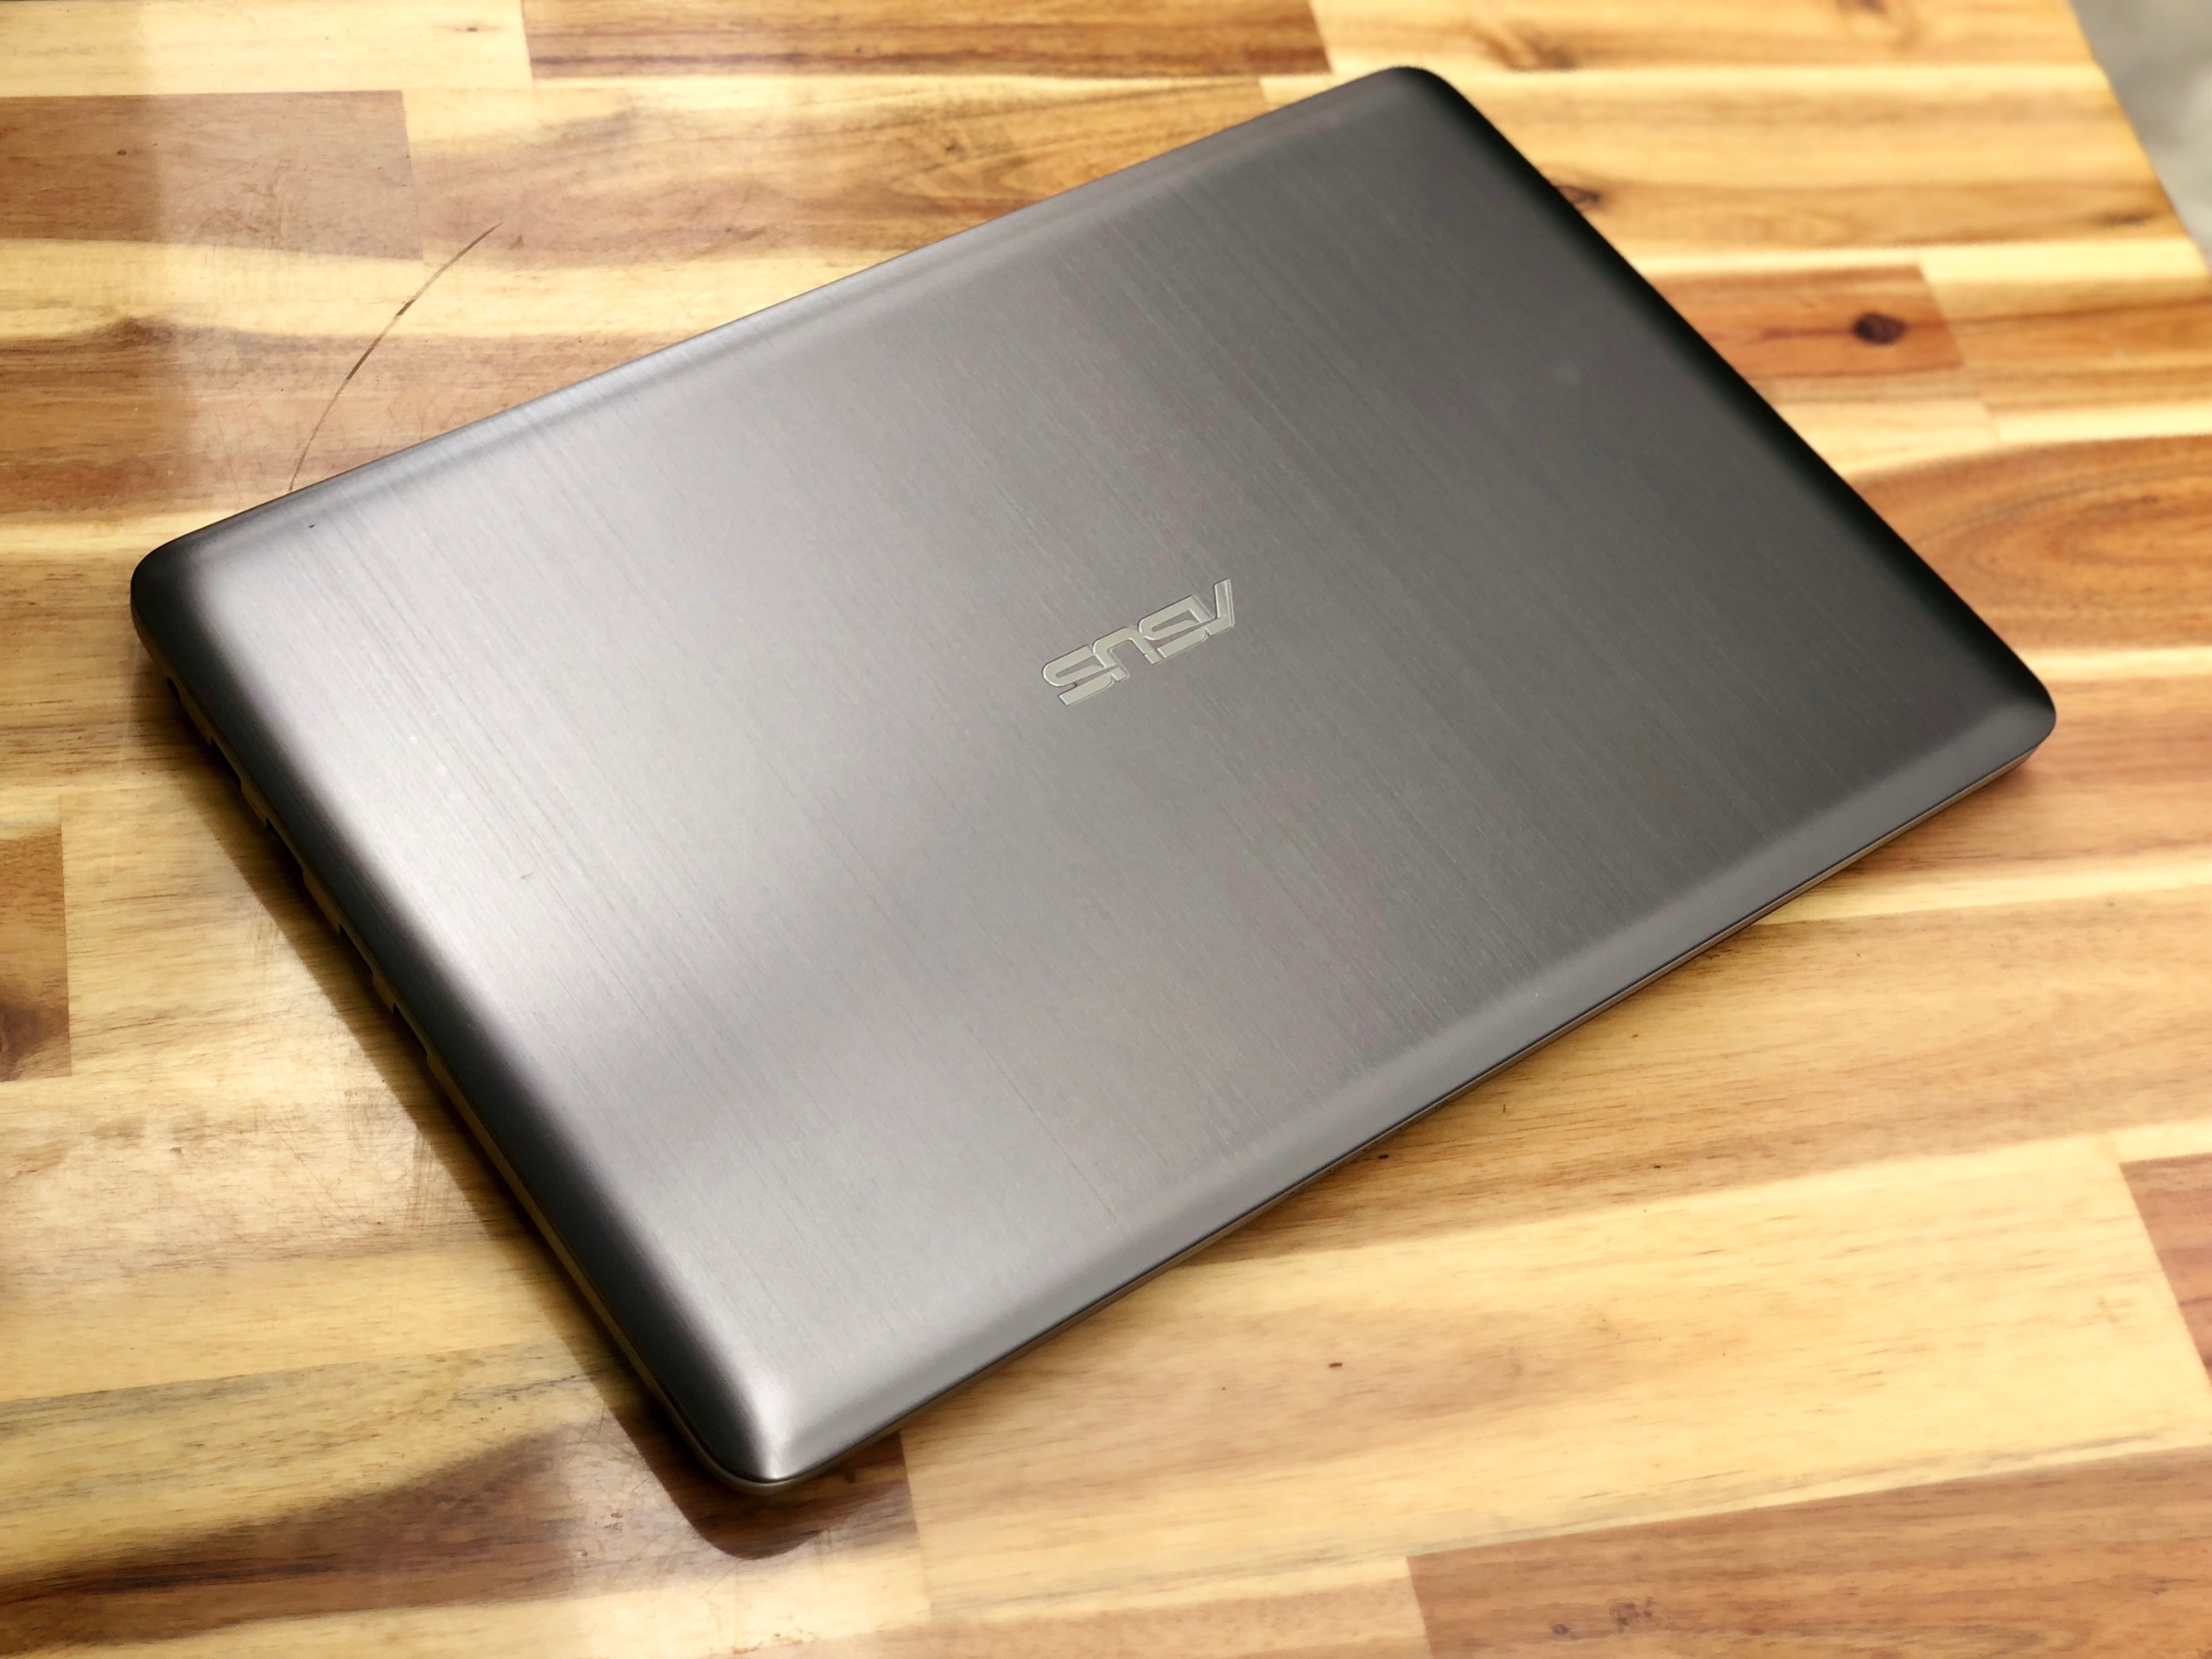 Laptop Asus K501LB, i5 6200U 4G 1000G Vga 940M Full HD Like new Giá rẻ3